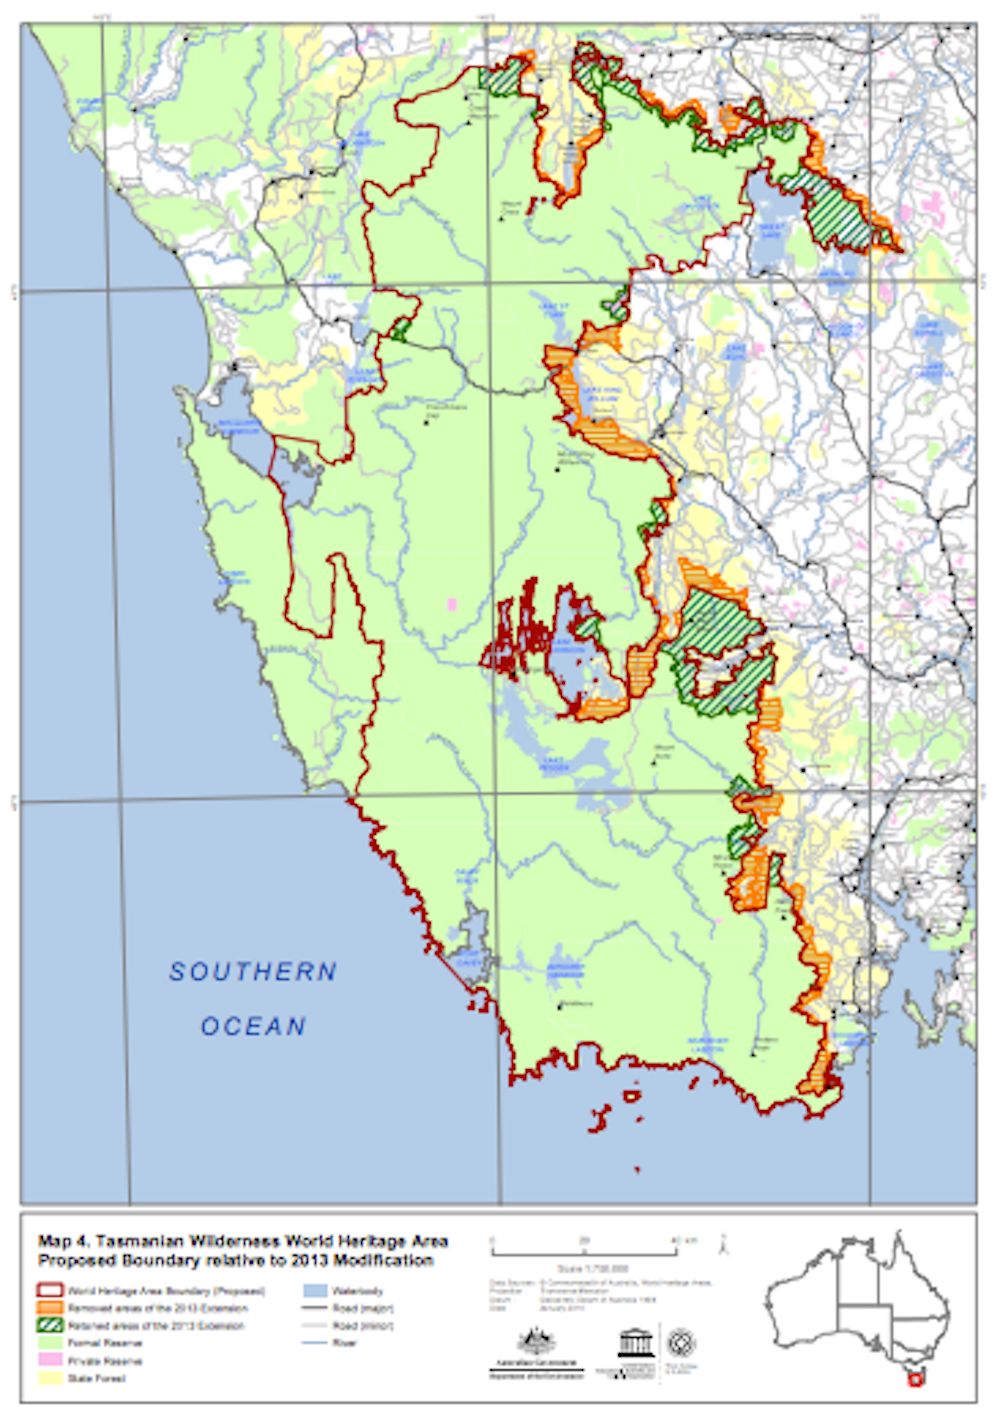 Tasmanias forests to remain under world heritage tasmanias world heritage area and extension screenshot from department of environment publicscrutiny Images